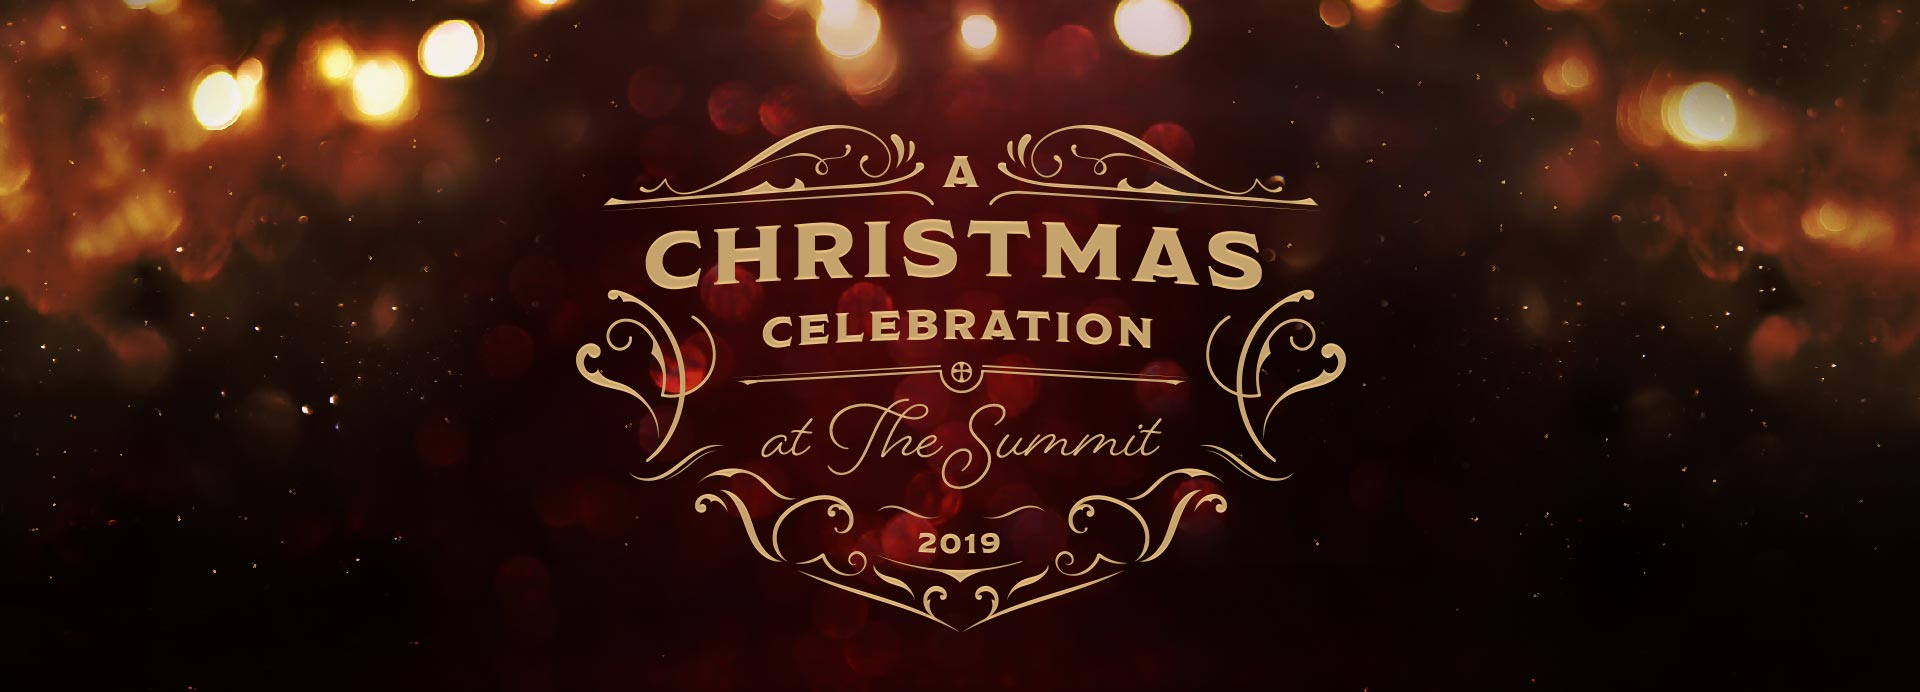 A Christmas Celebration at The Summit 2019